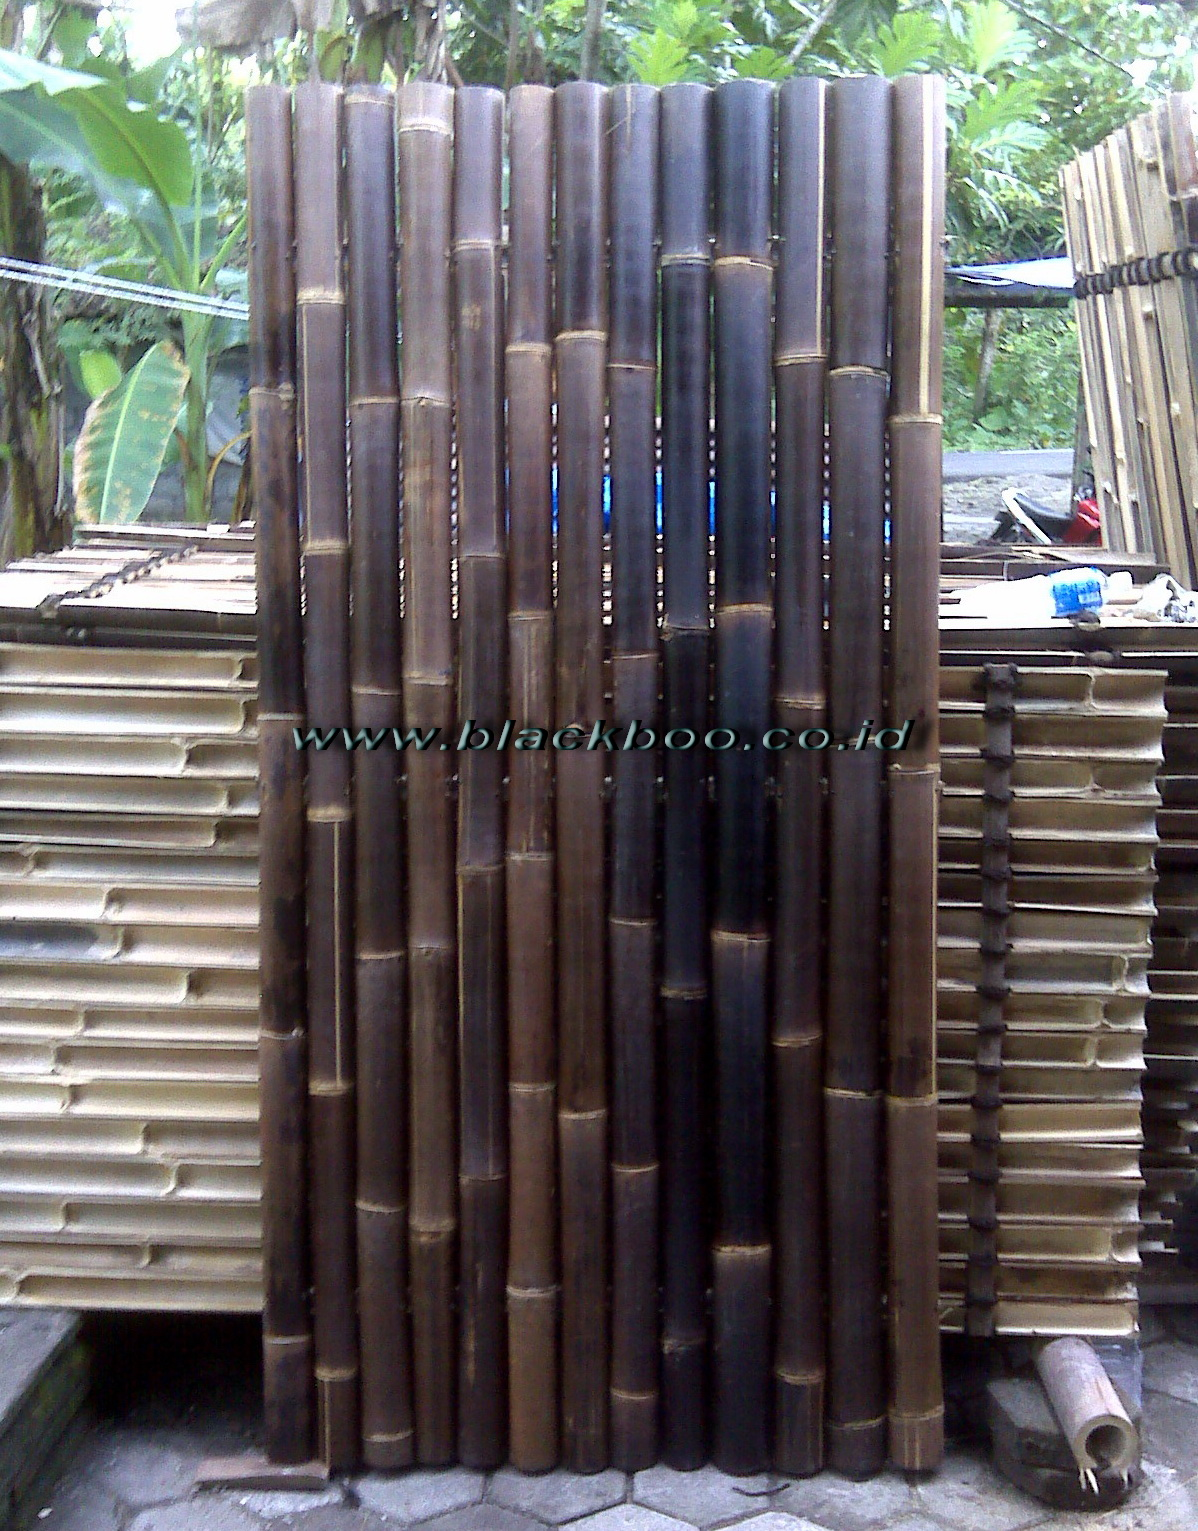 PLAIN BLACK BAMBOO FENCE